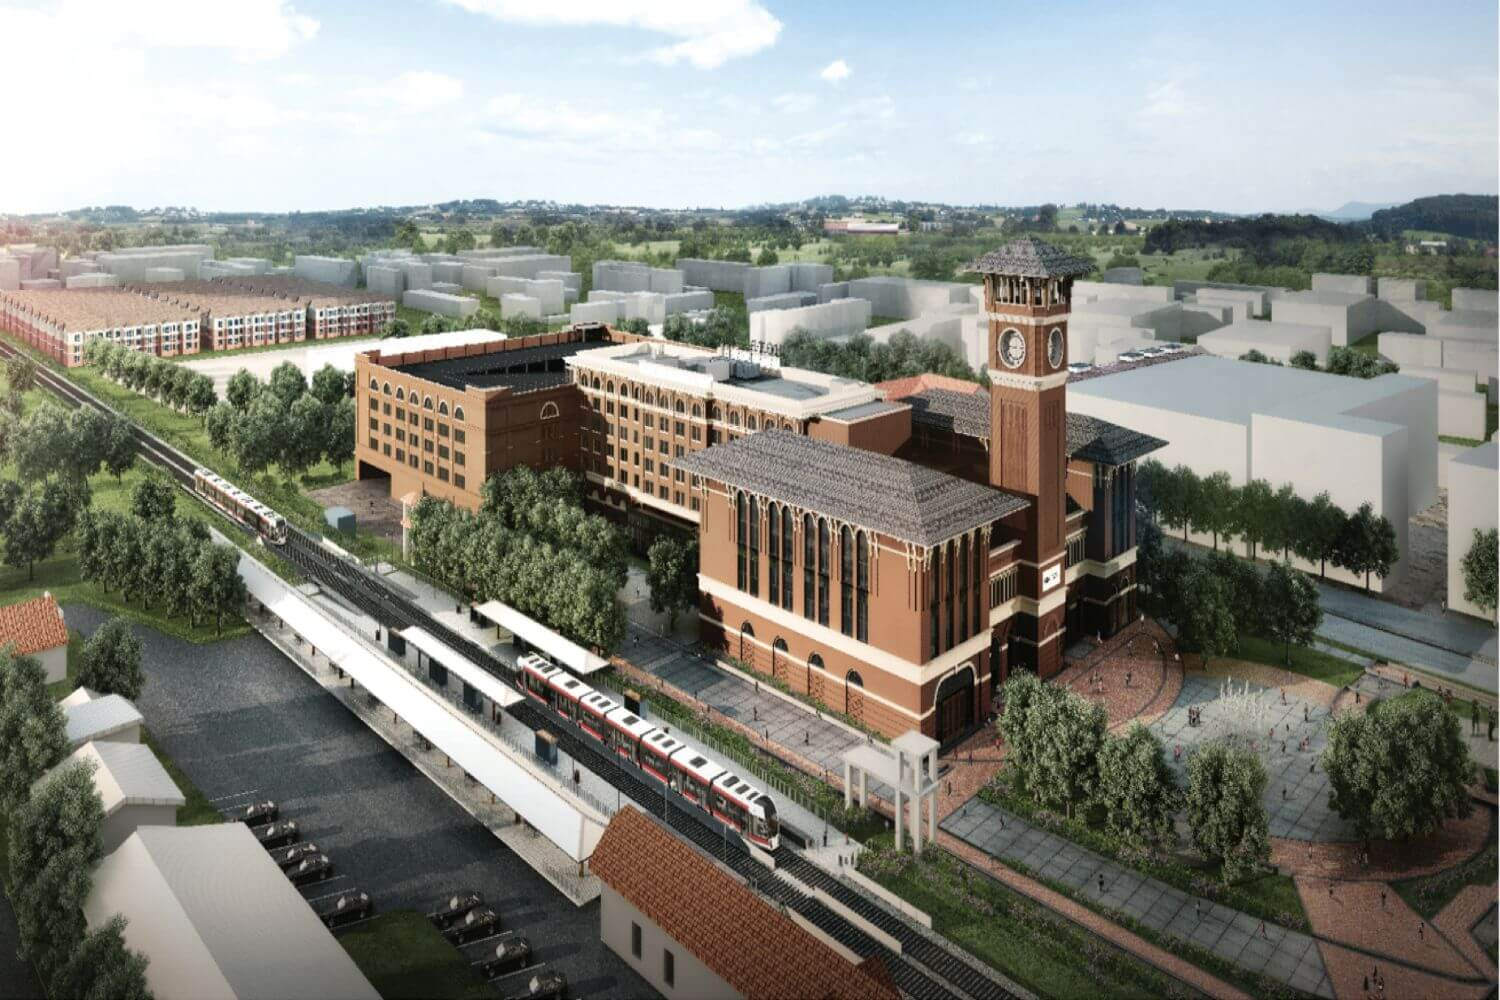 Grapevine Main mixed use project with food hall, hotel and parking garage in Grapevine, Texas.